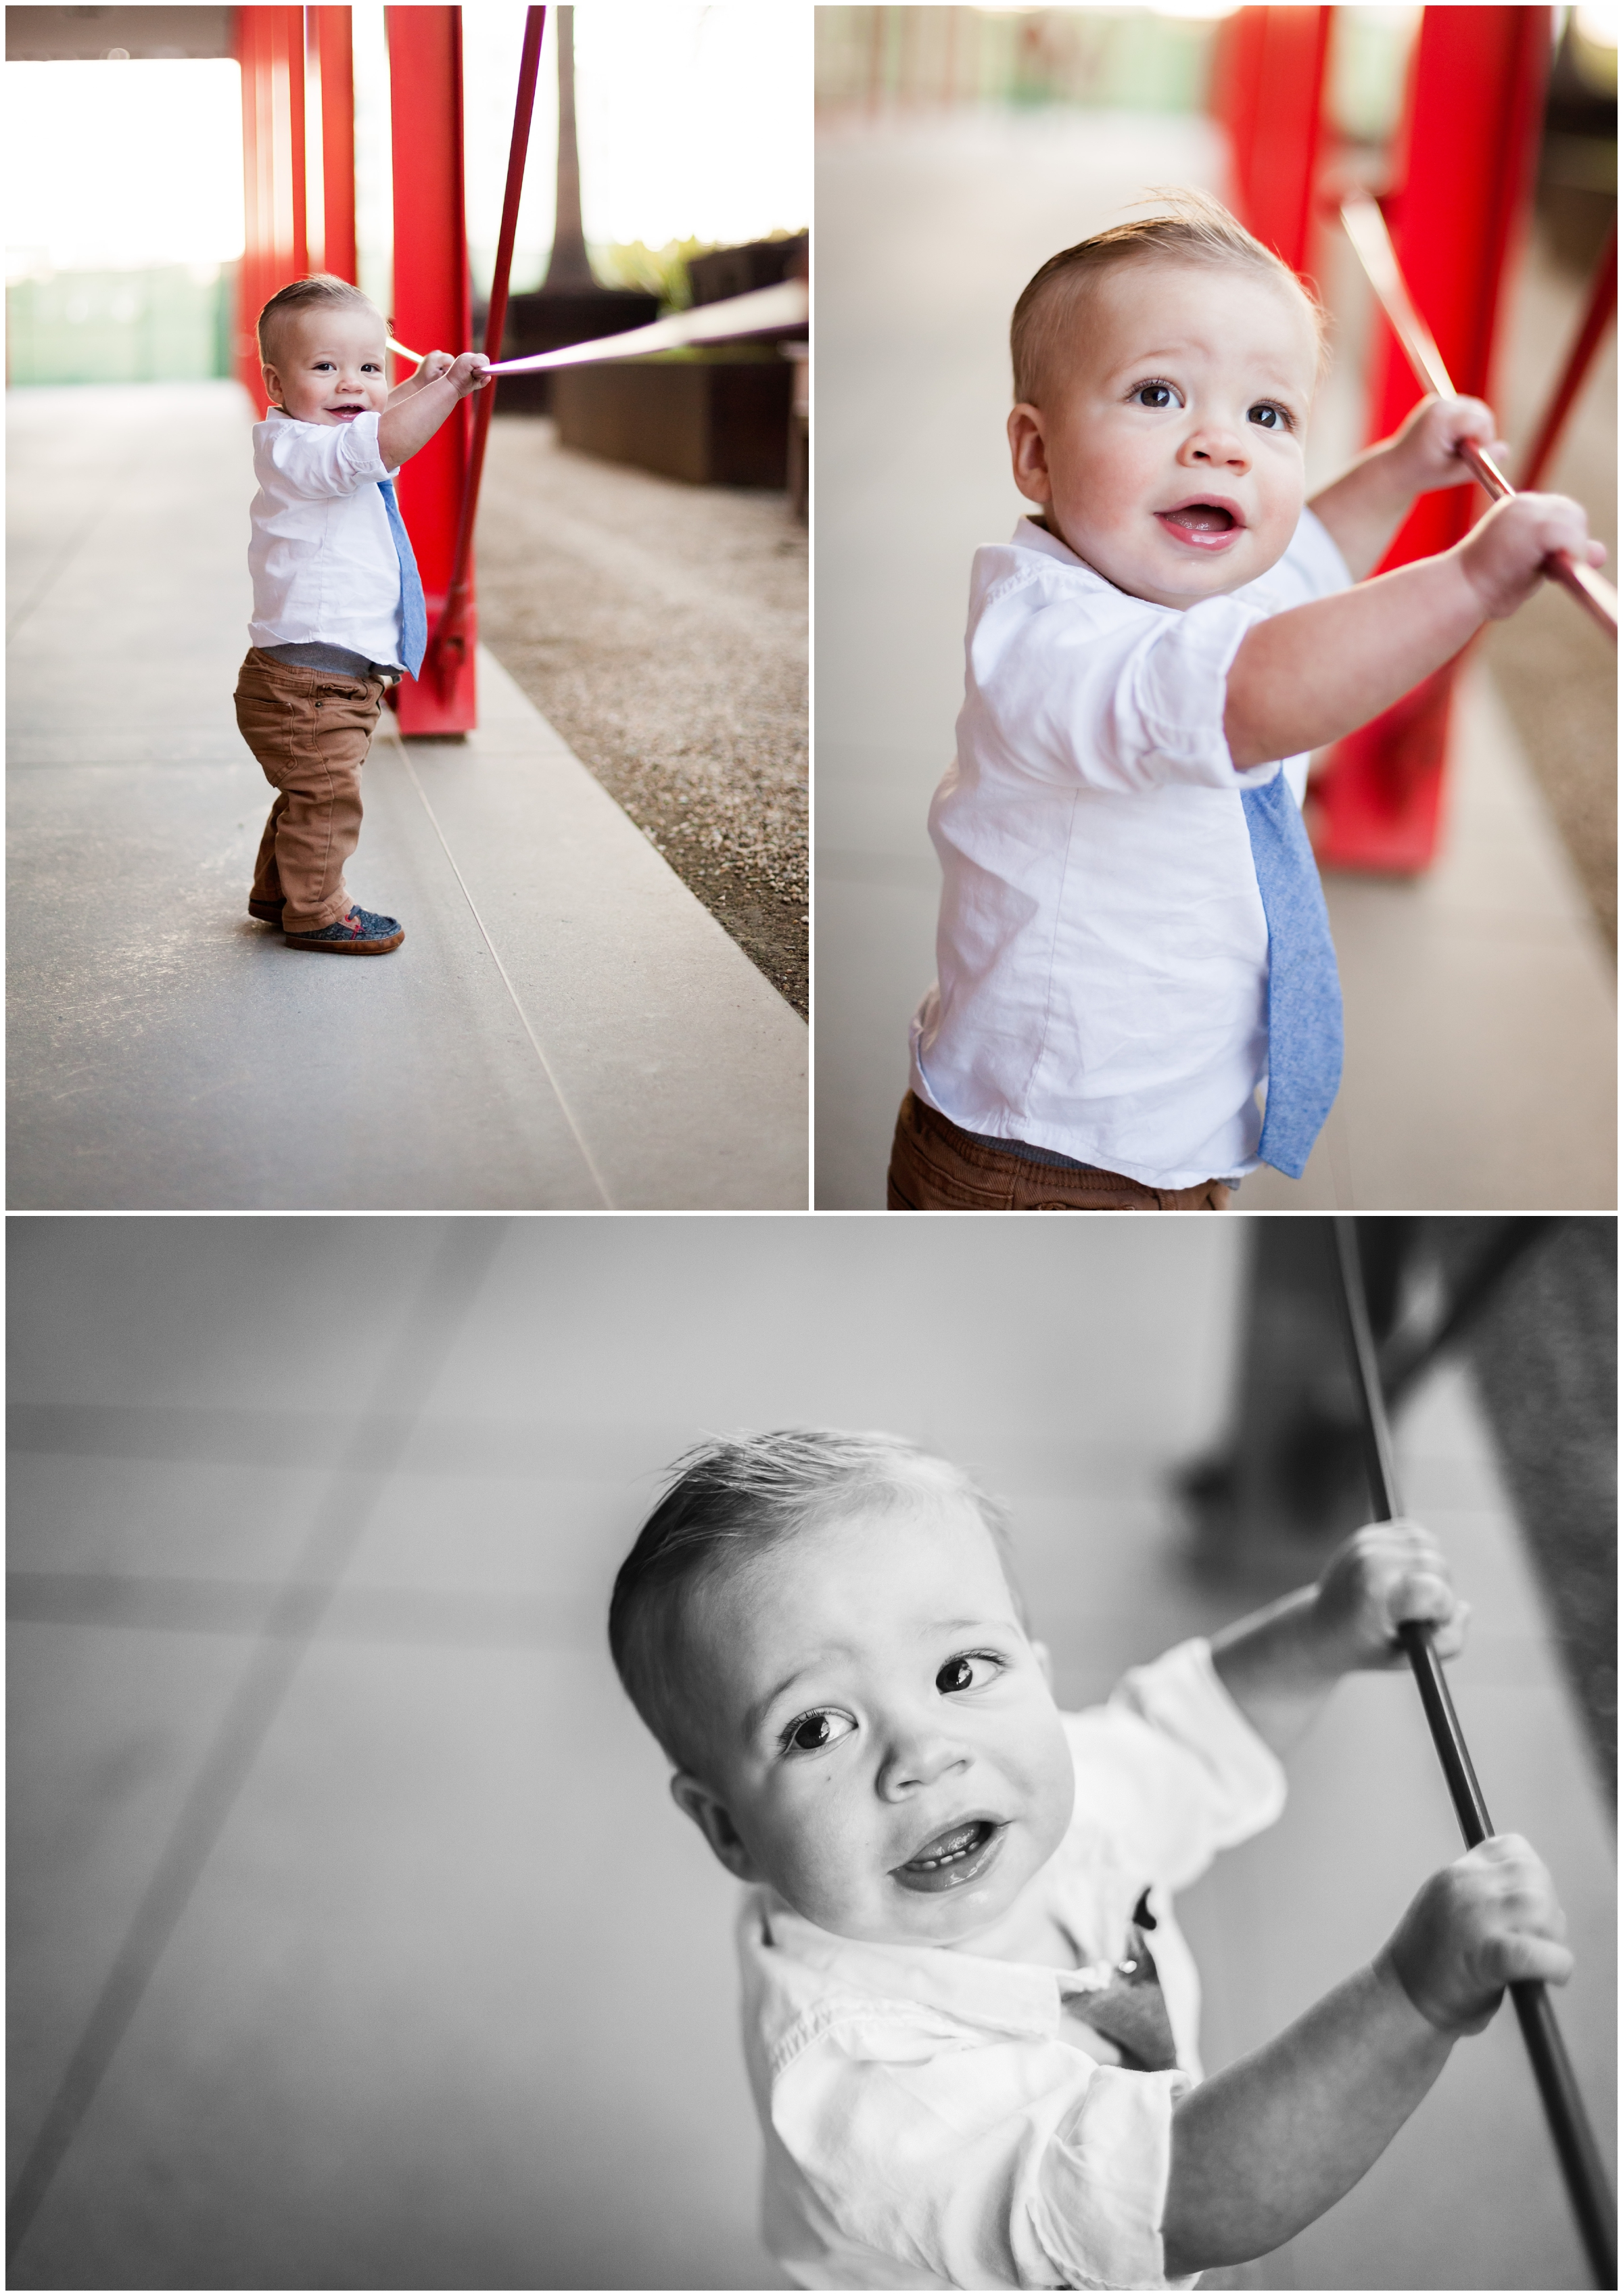 Baby Portraits at LACMA by Just Maggie Photography - Los Angeles Baby Photographer